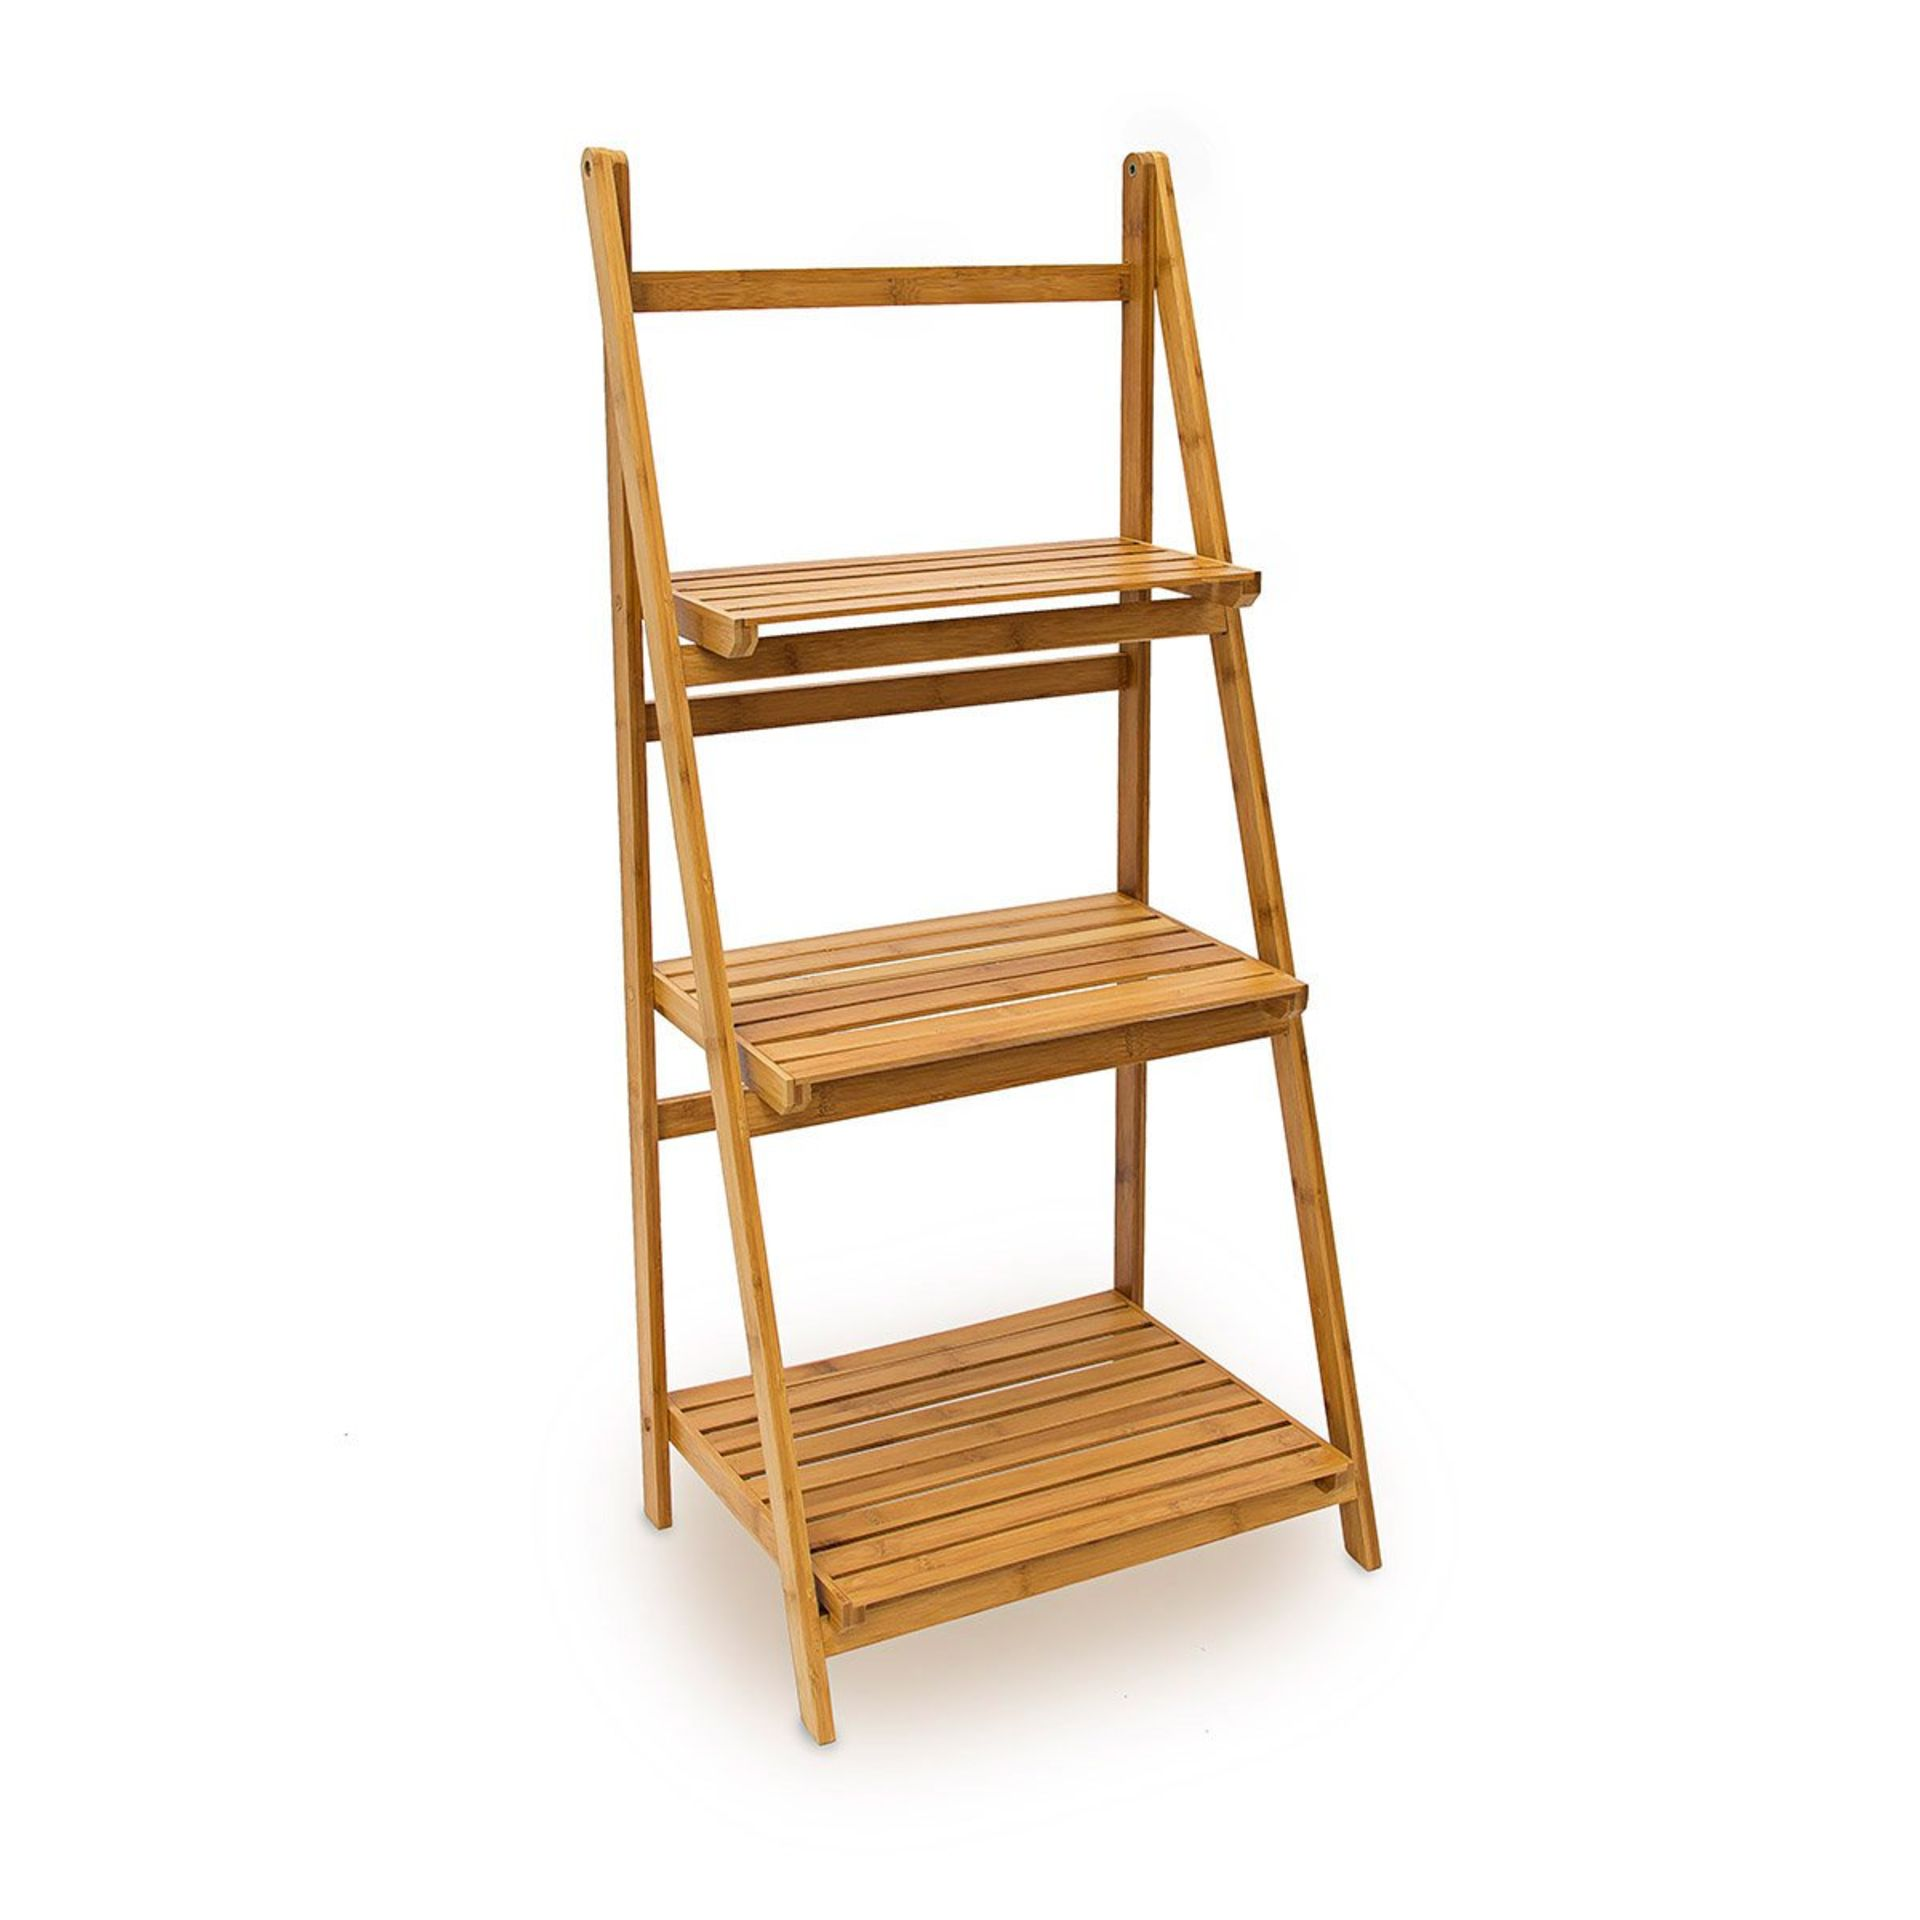 Lot 39 - Relaxdays Bamboo Ladder Rack with 3 Shelves